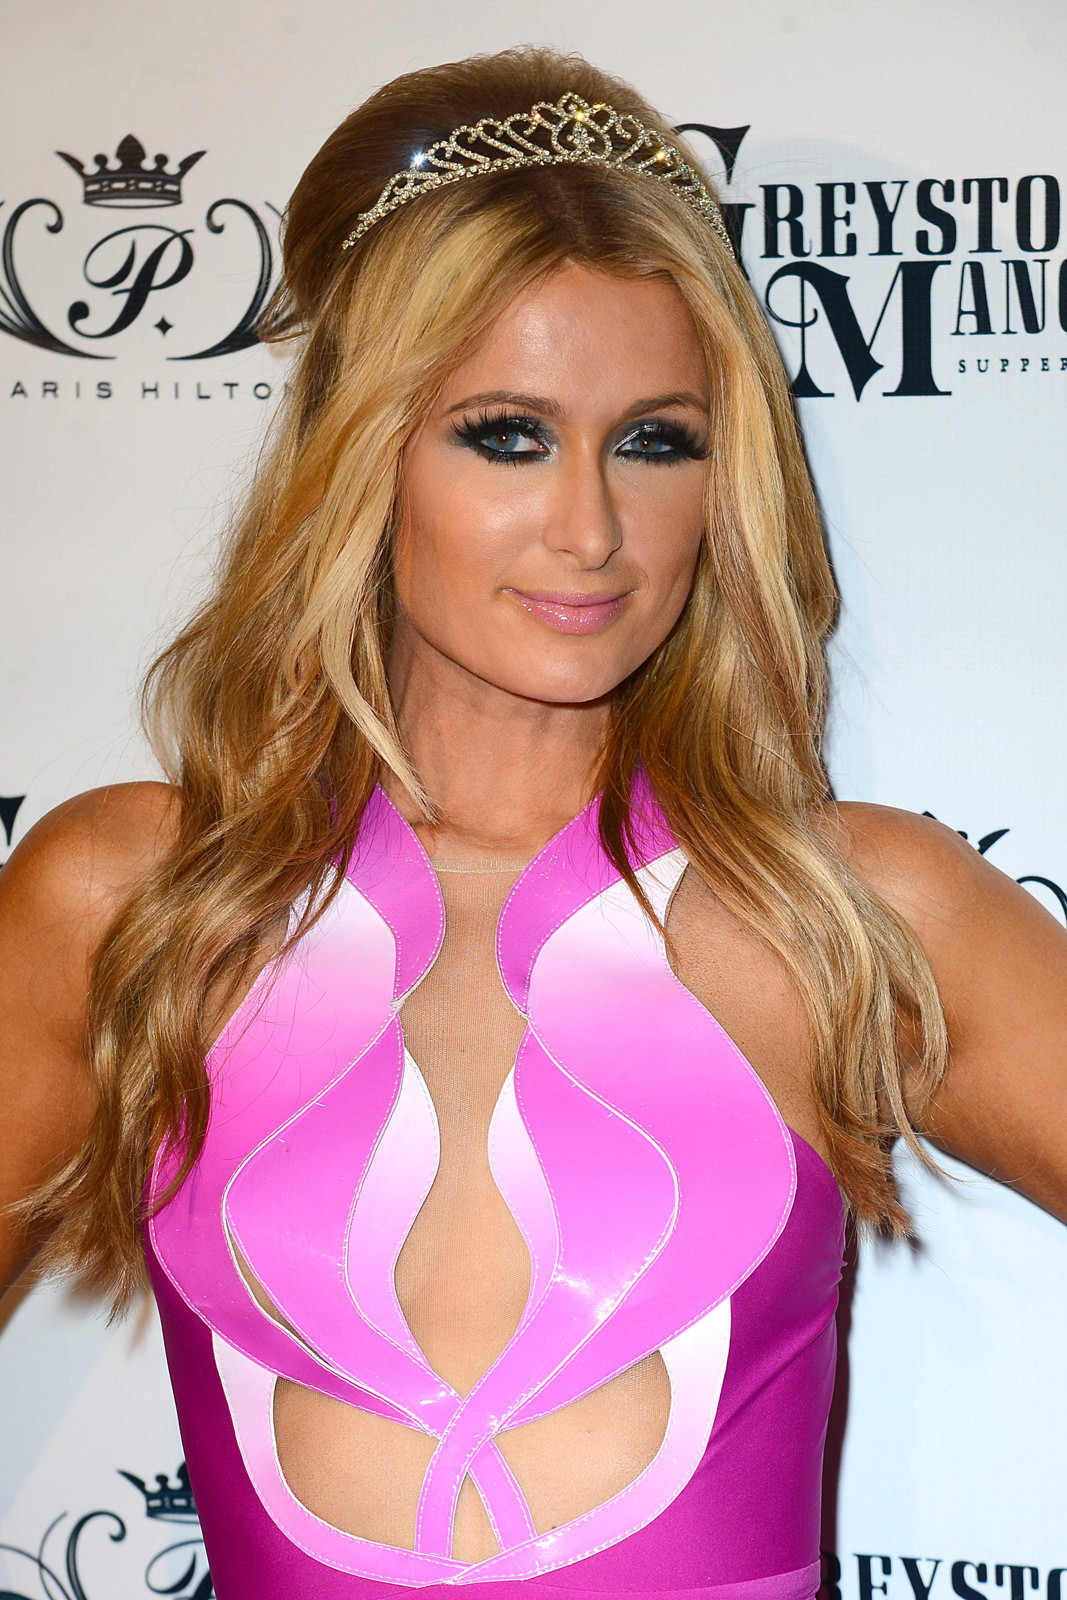 Paris Hilton Photo Gallery